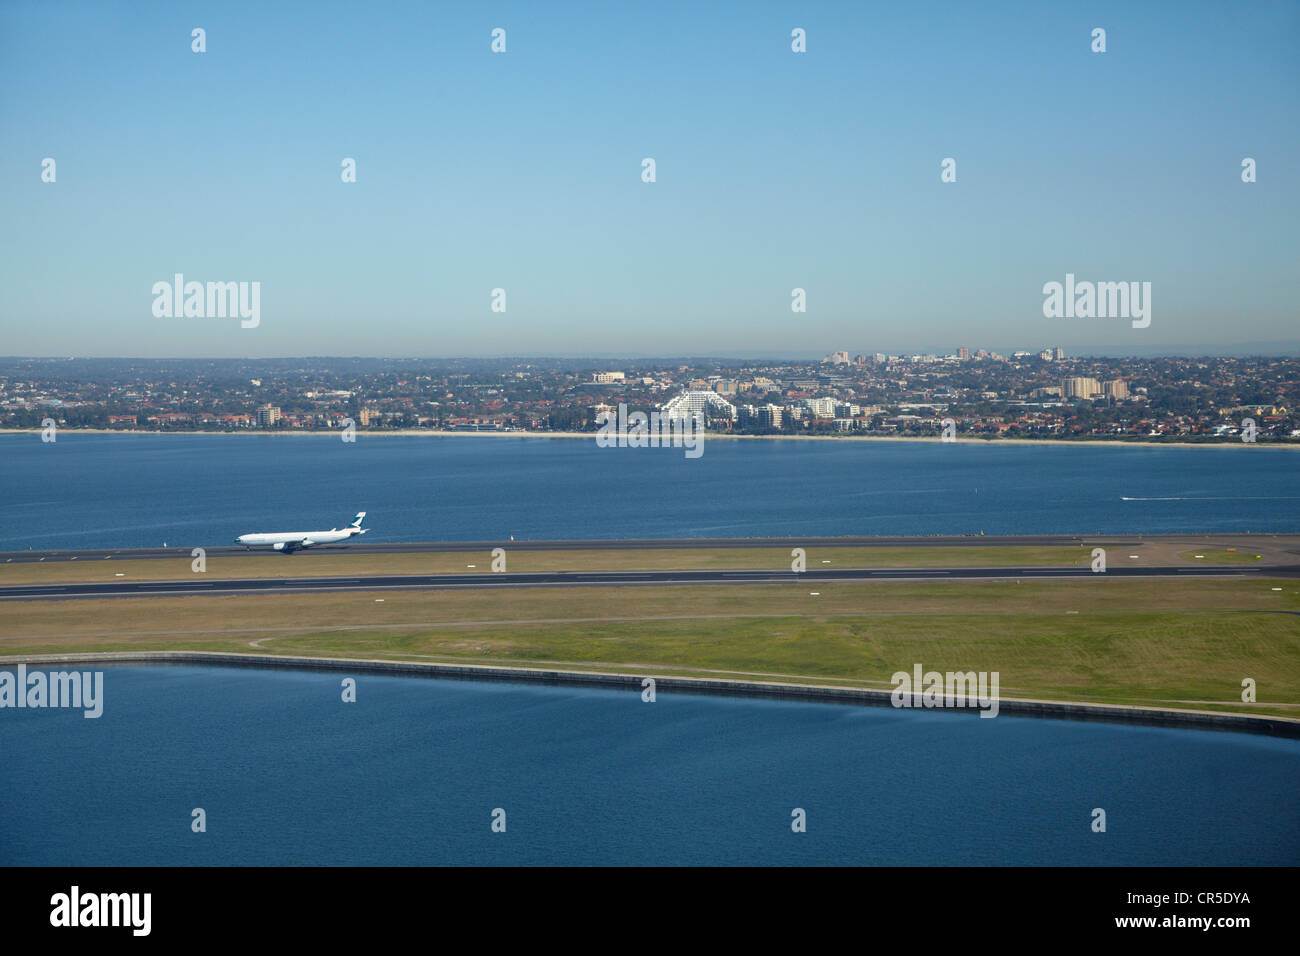 Plane landing at Sydney Airport, and Botany Bay, Sydney, New South Wales, Australia - aerial Stock Photo